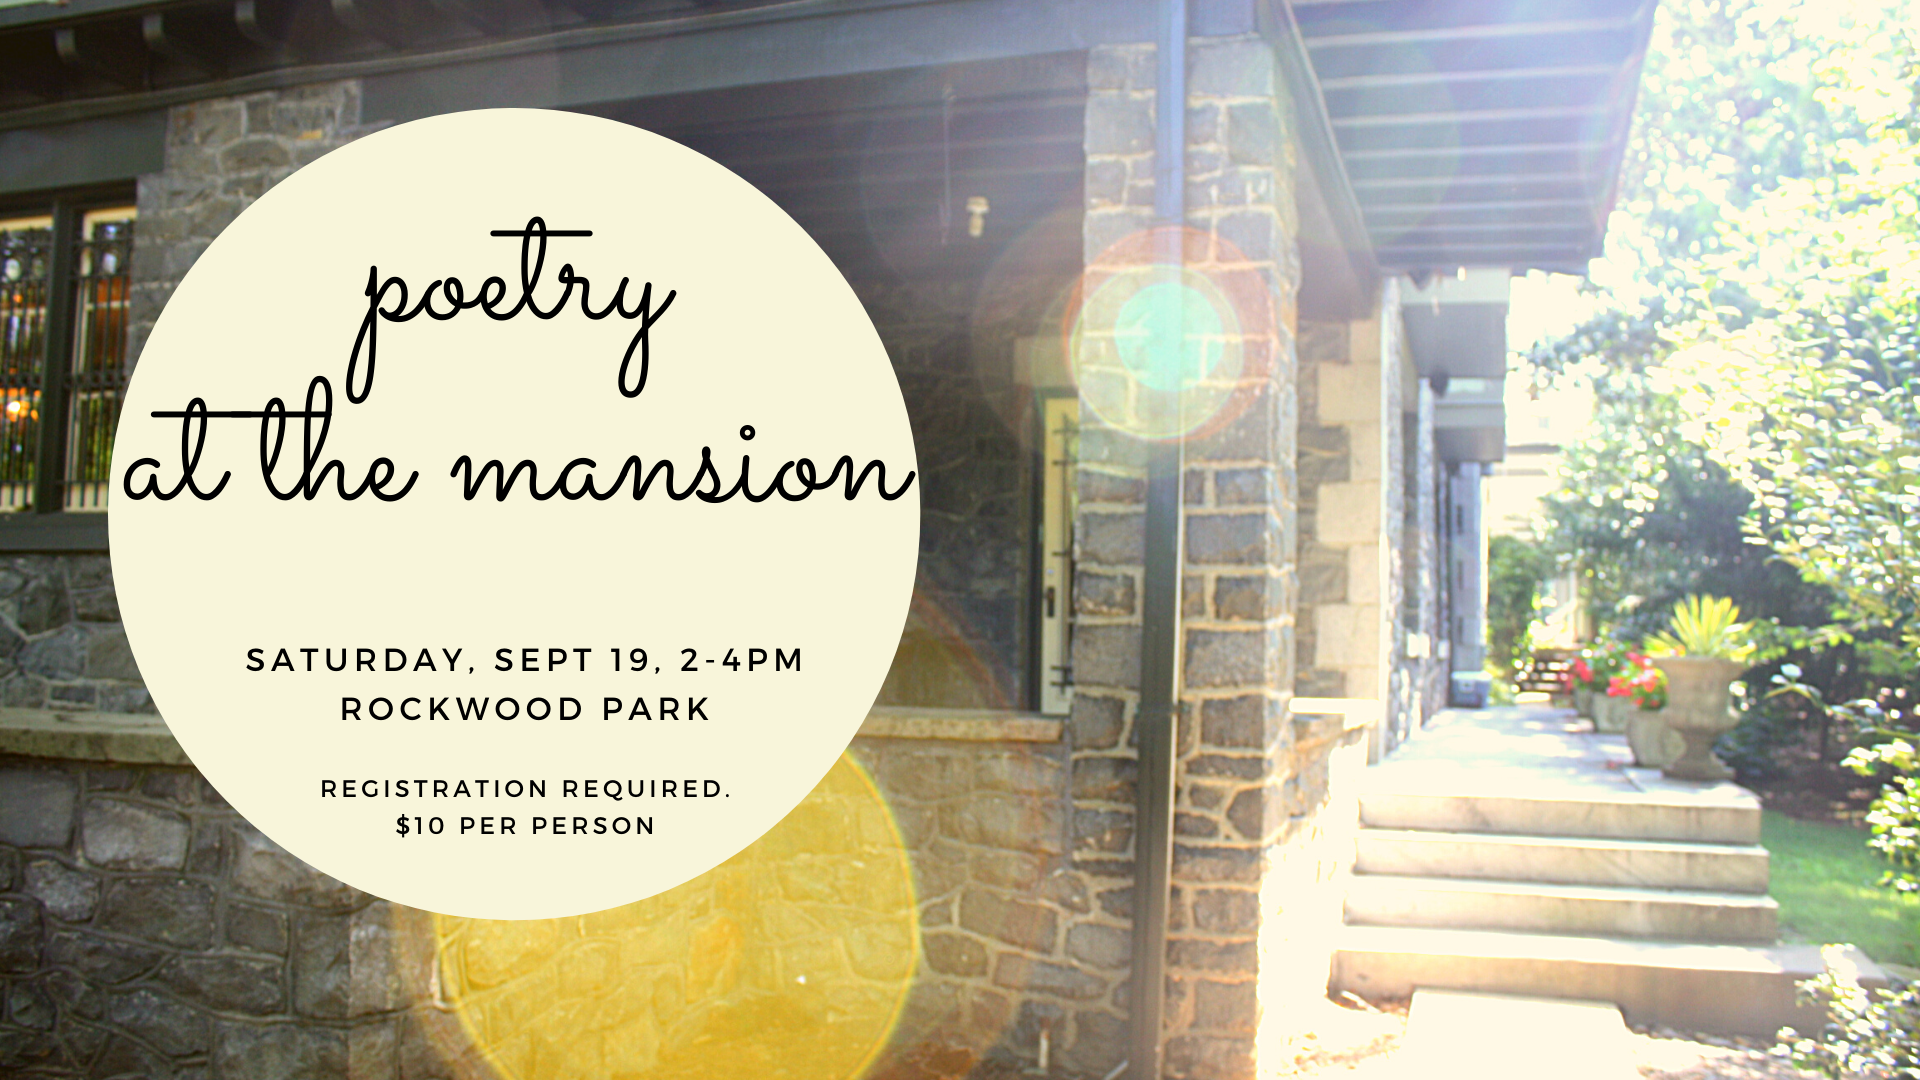 POETRY AT THE MANSION